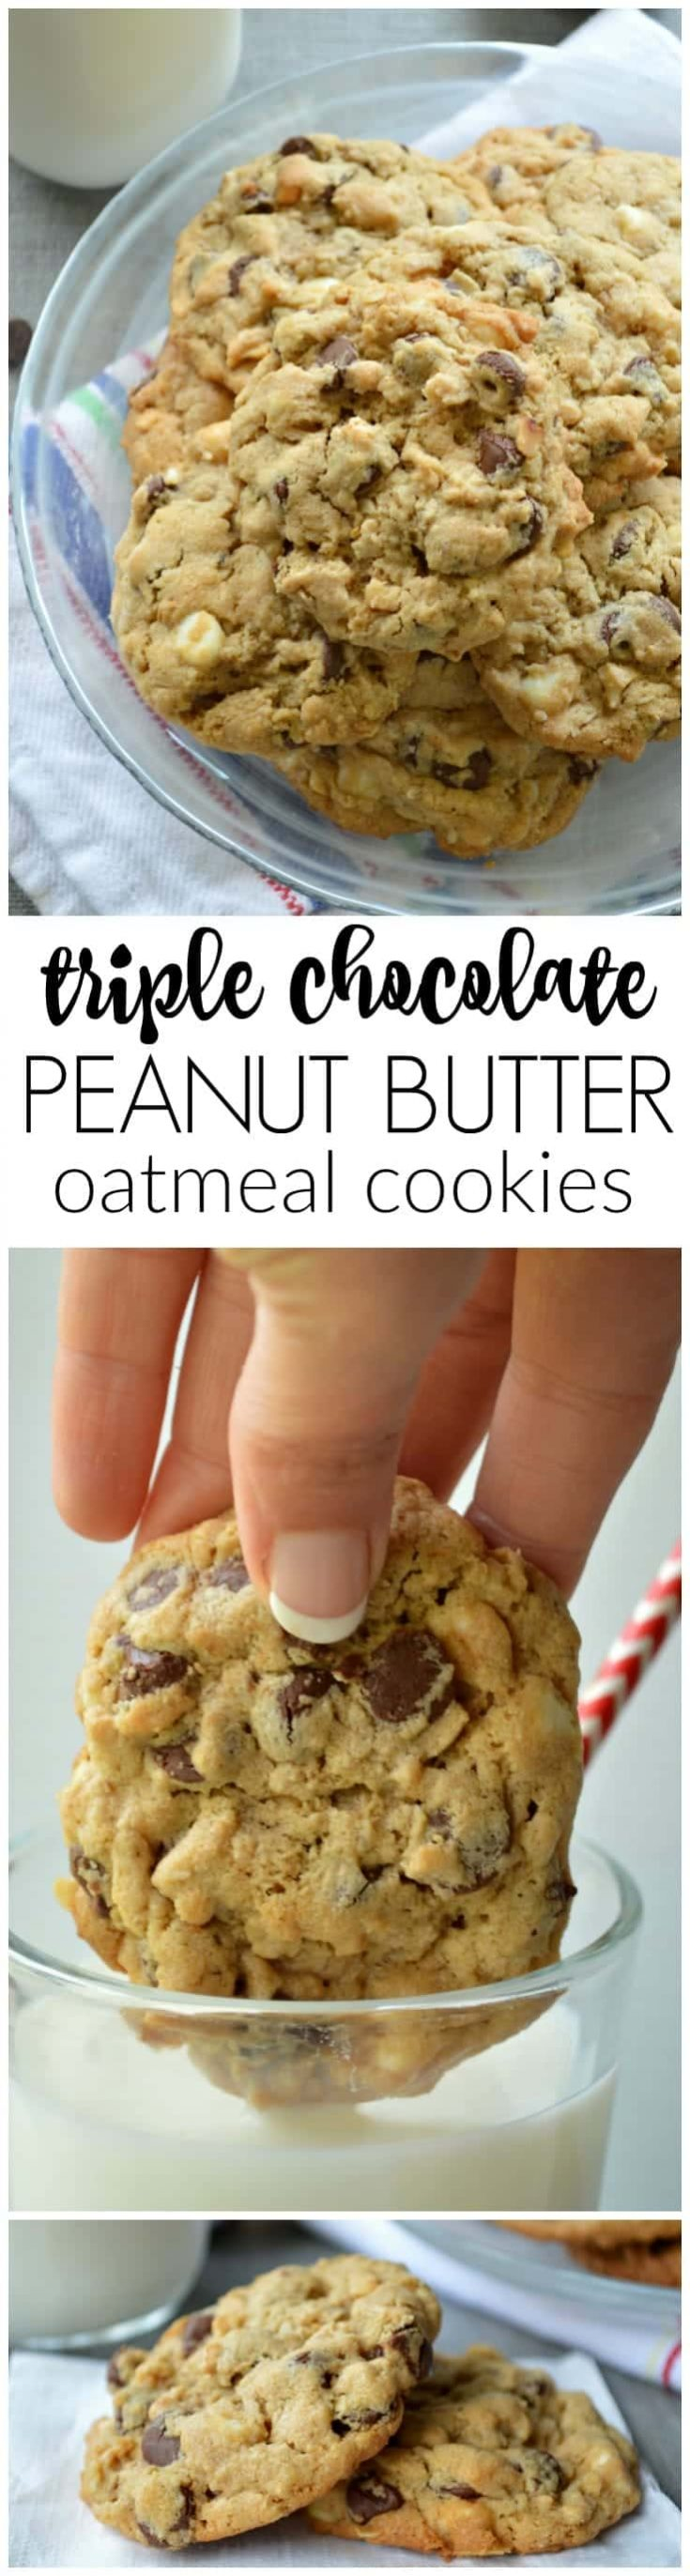 My ACTUAL Favorite Triple Chocolate Peanut Butter Oatmeal Cookies. They are the perfect amount of chewy, loaded with three kinds of chocolate chips, peanut butter chips, AND peanut butter in the batter.